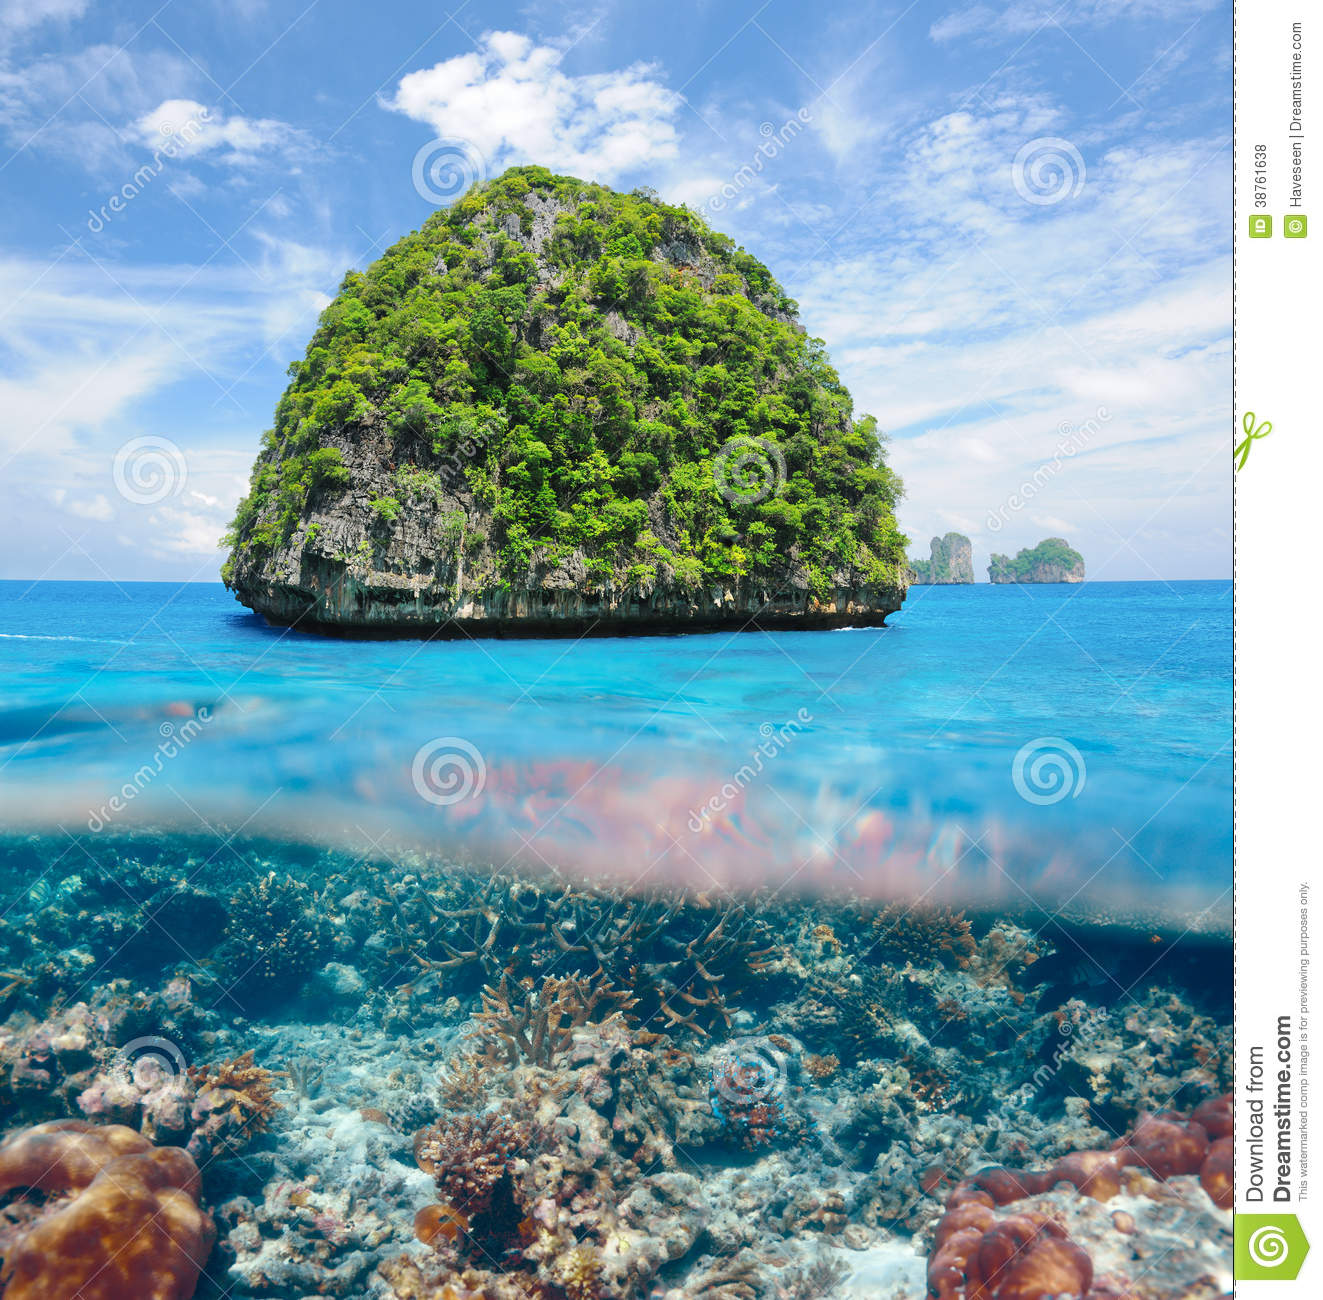 Uninhabited Island With Coral Reef Underwater View Royalty